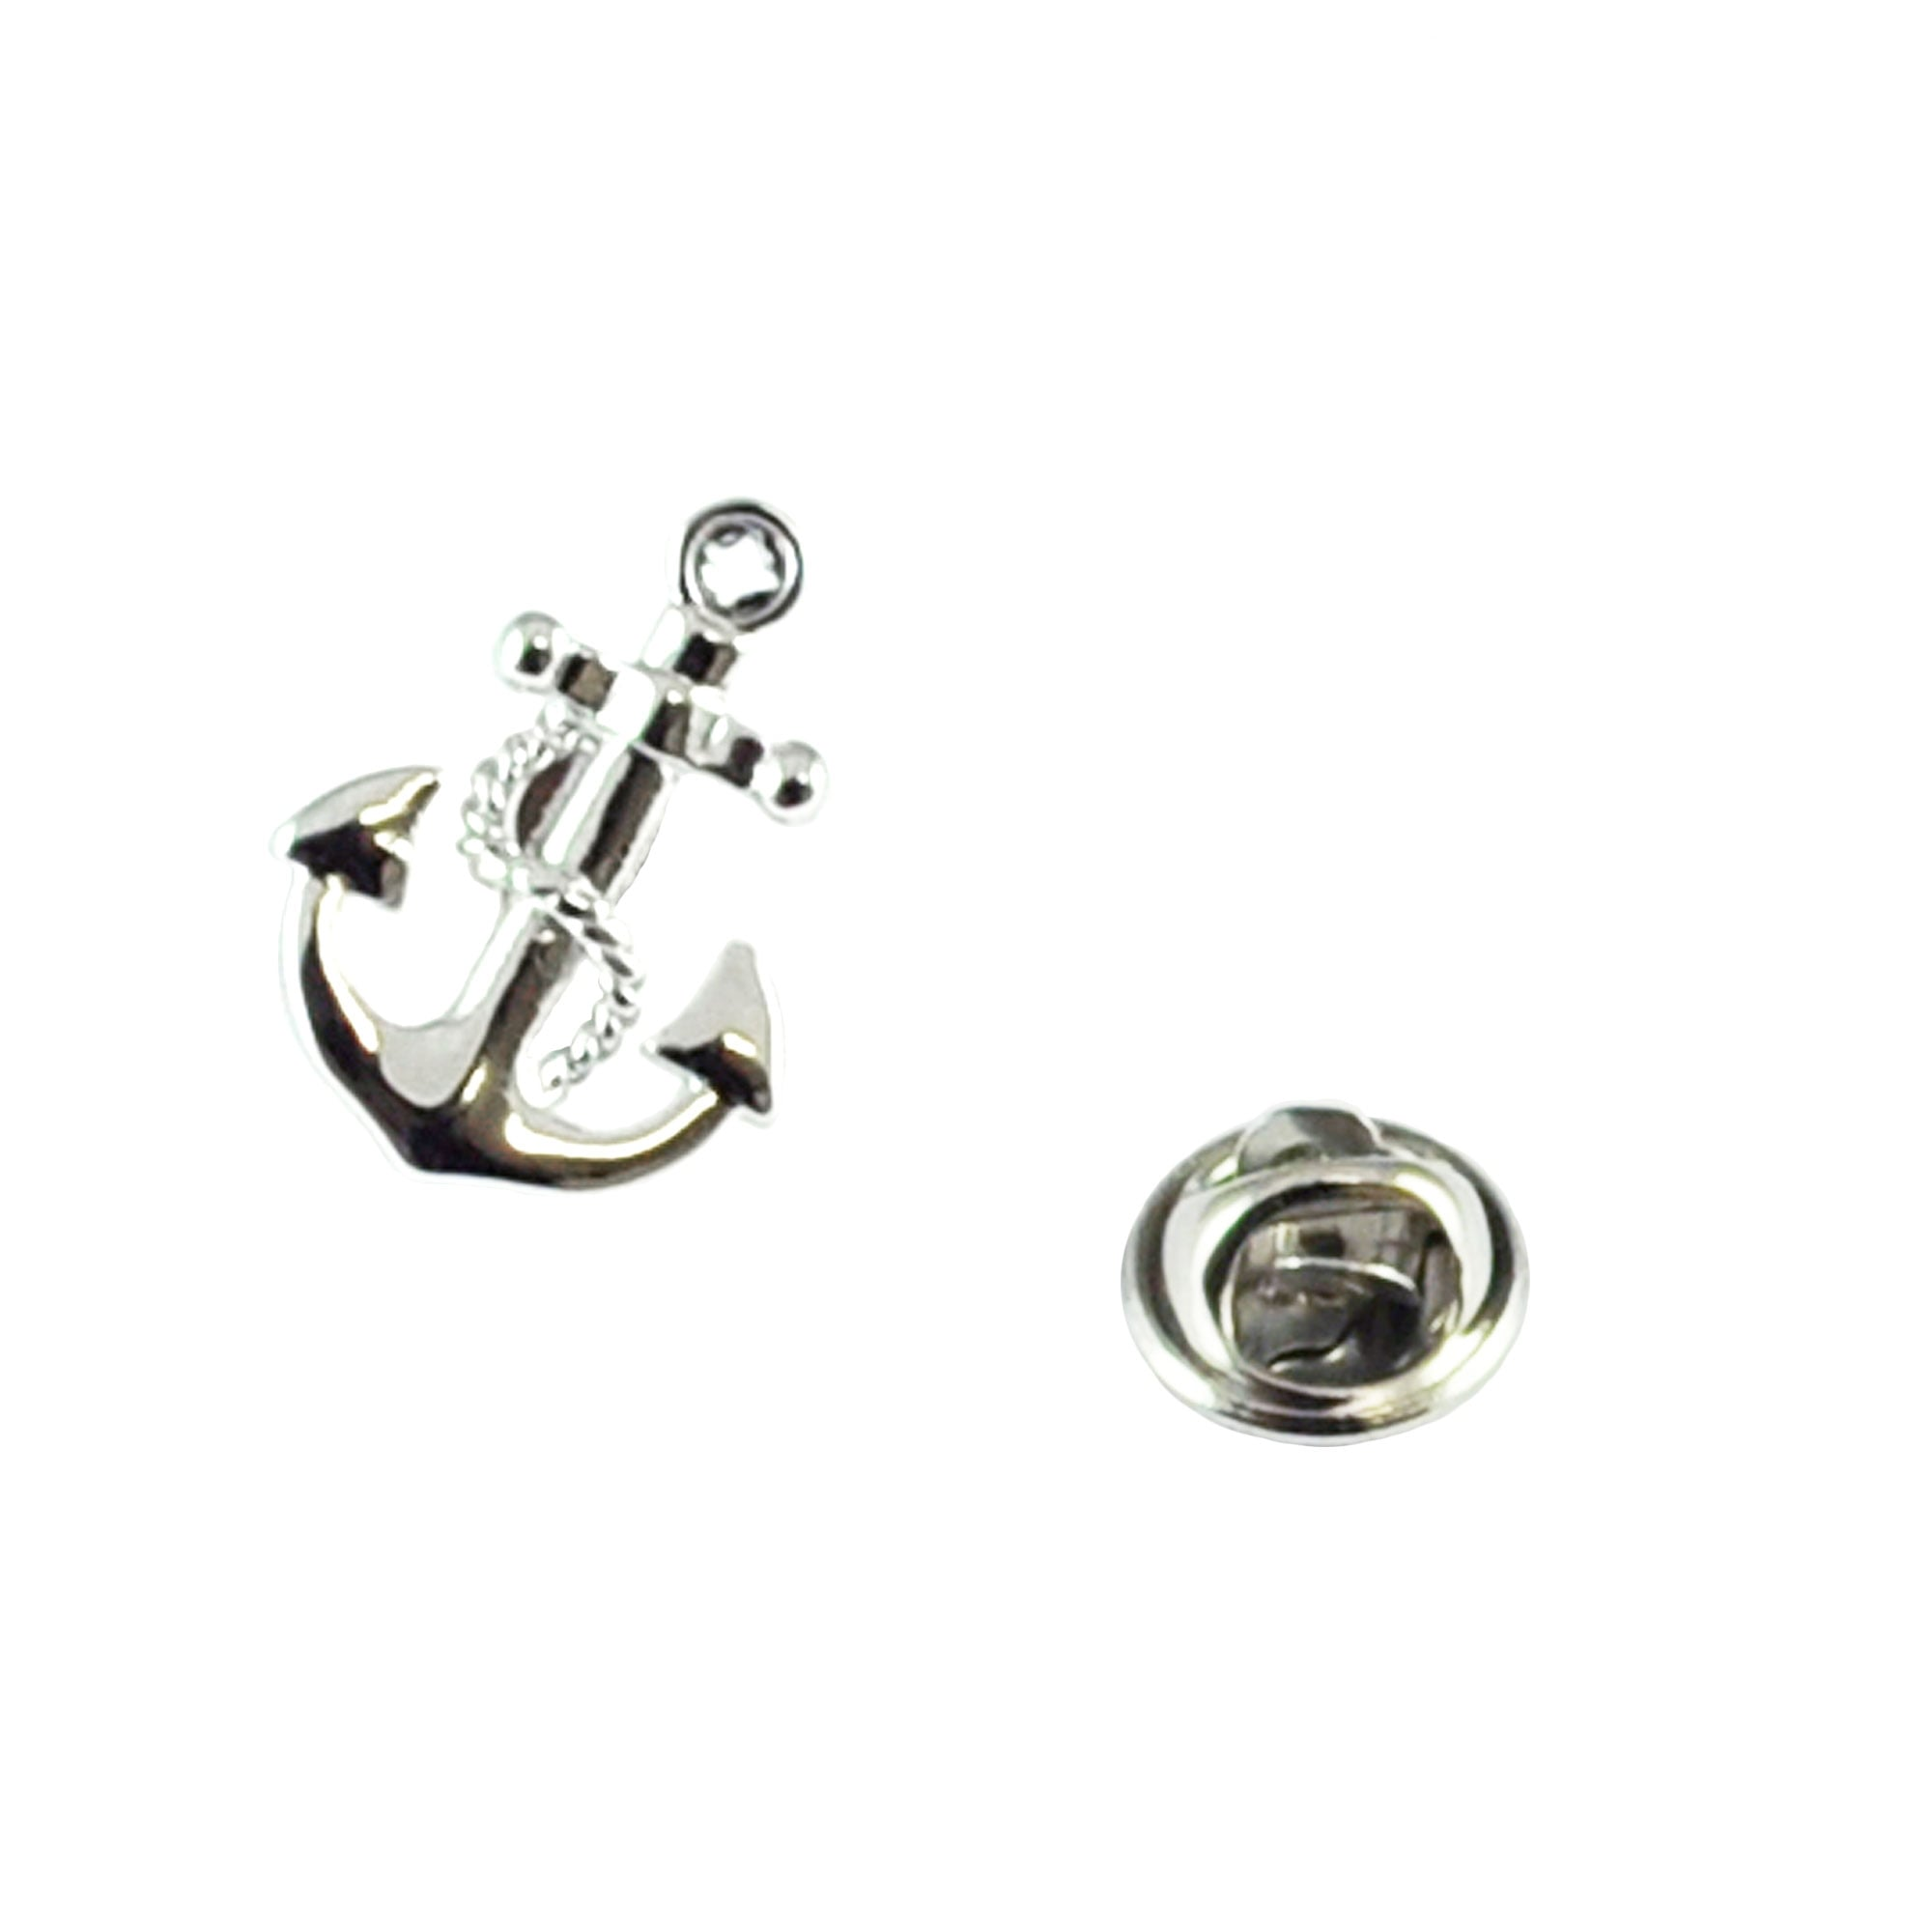 Anchor Amp Chain Lapel Pin Badge From Ties Planet Uk